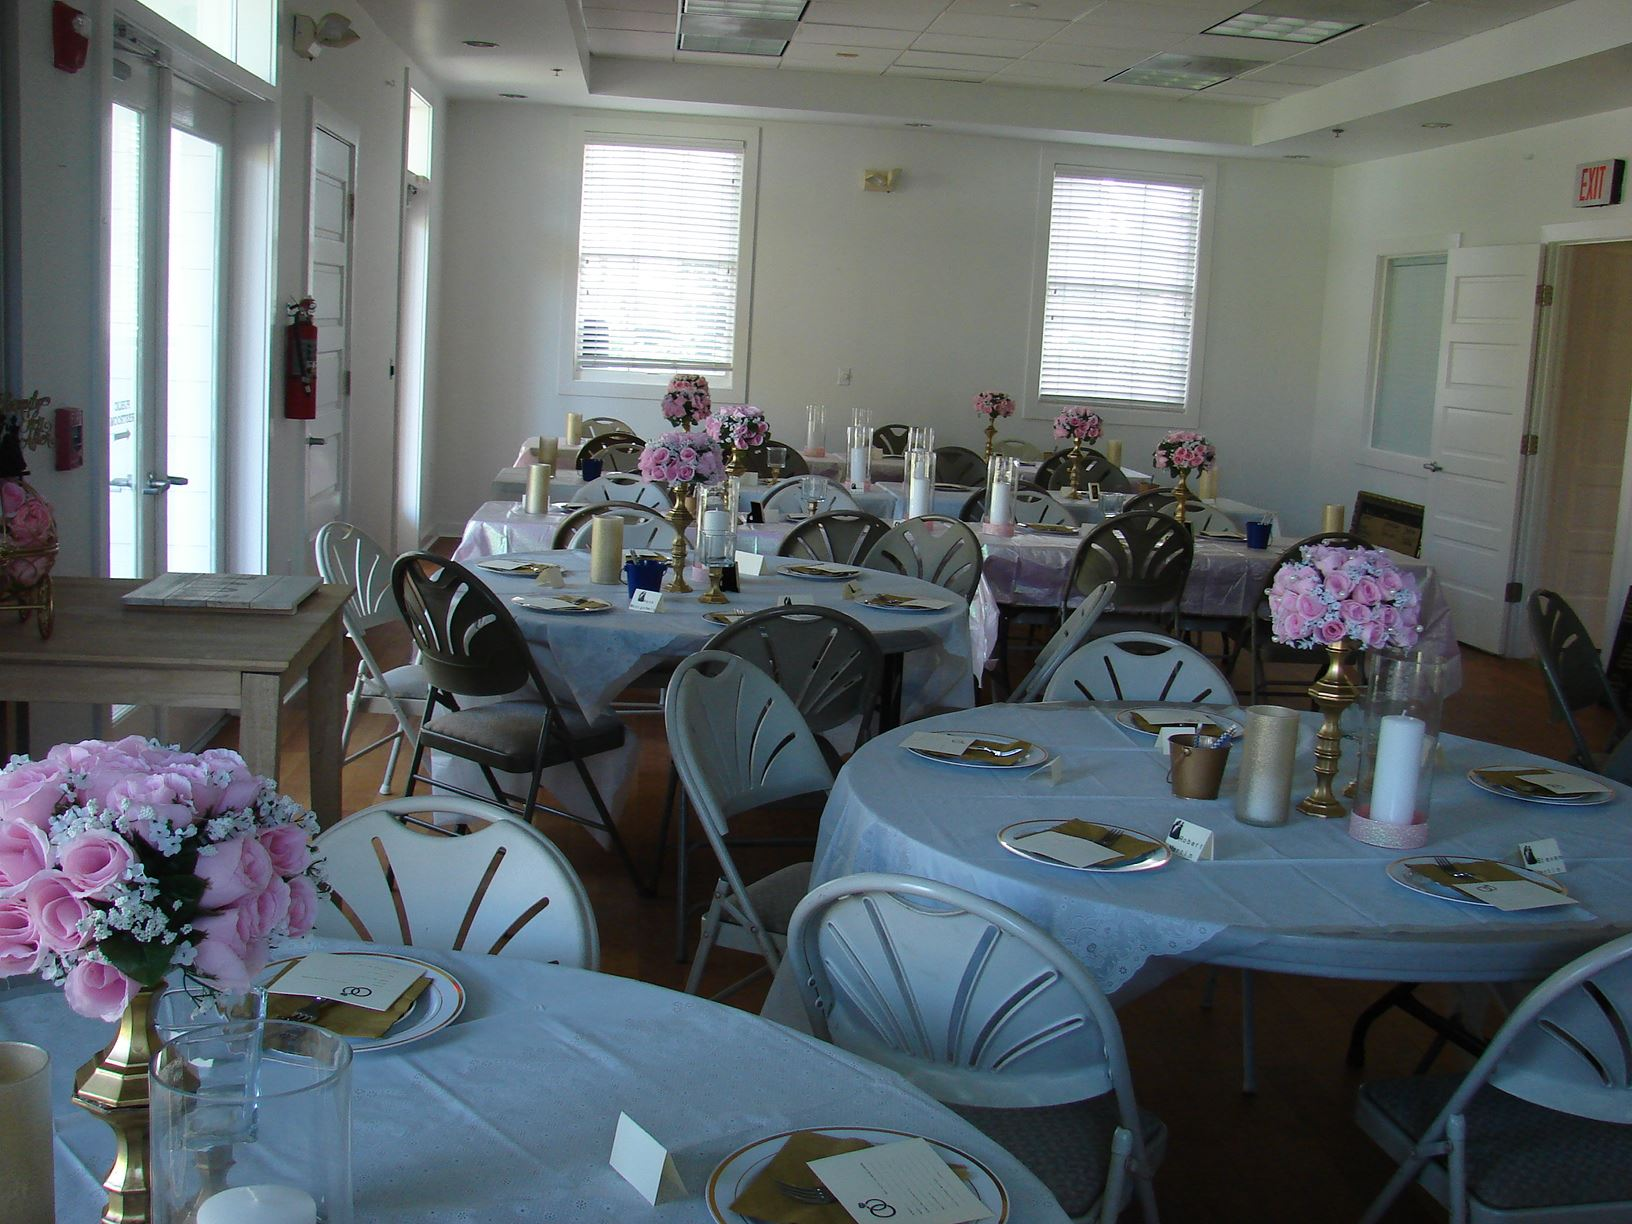 Adele Grage Rental space decorated for baby shower.